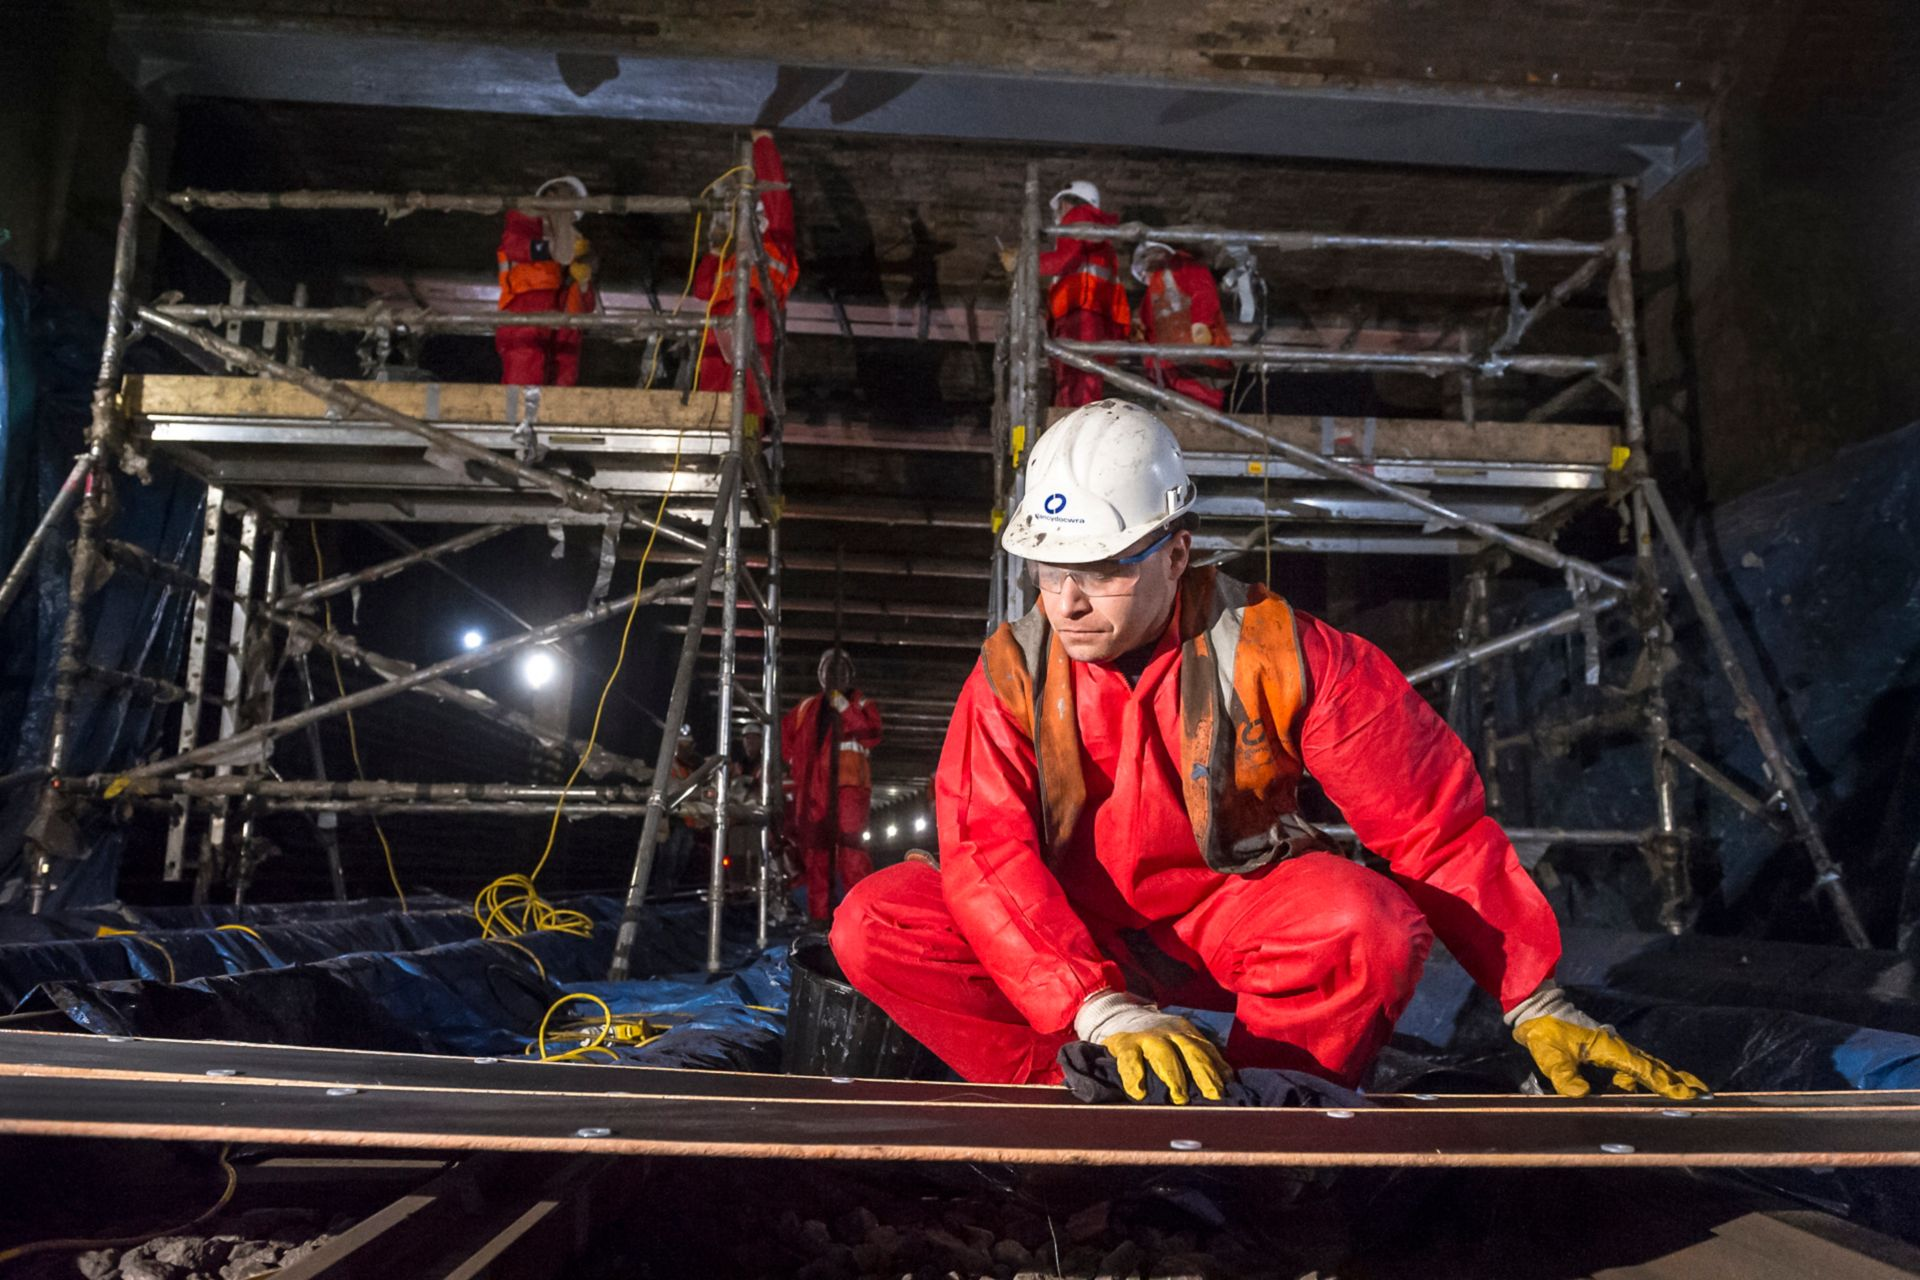 Construction worker prepares Sika Carbodur CFRP strengthening plates